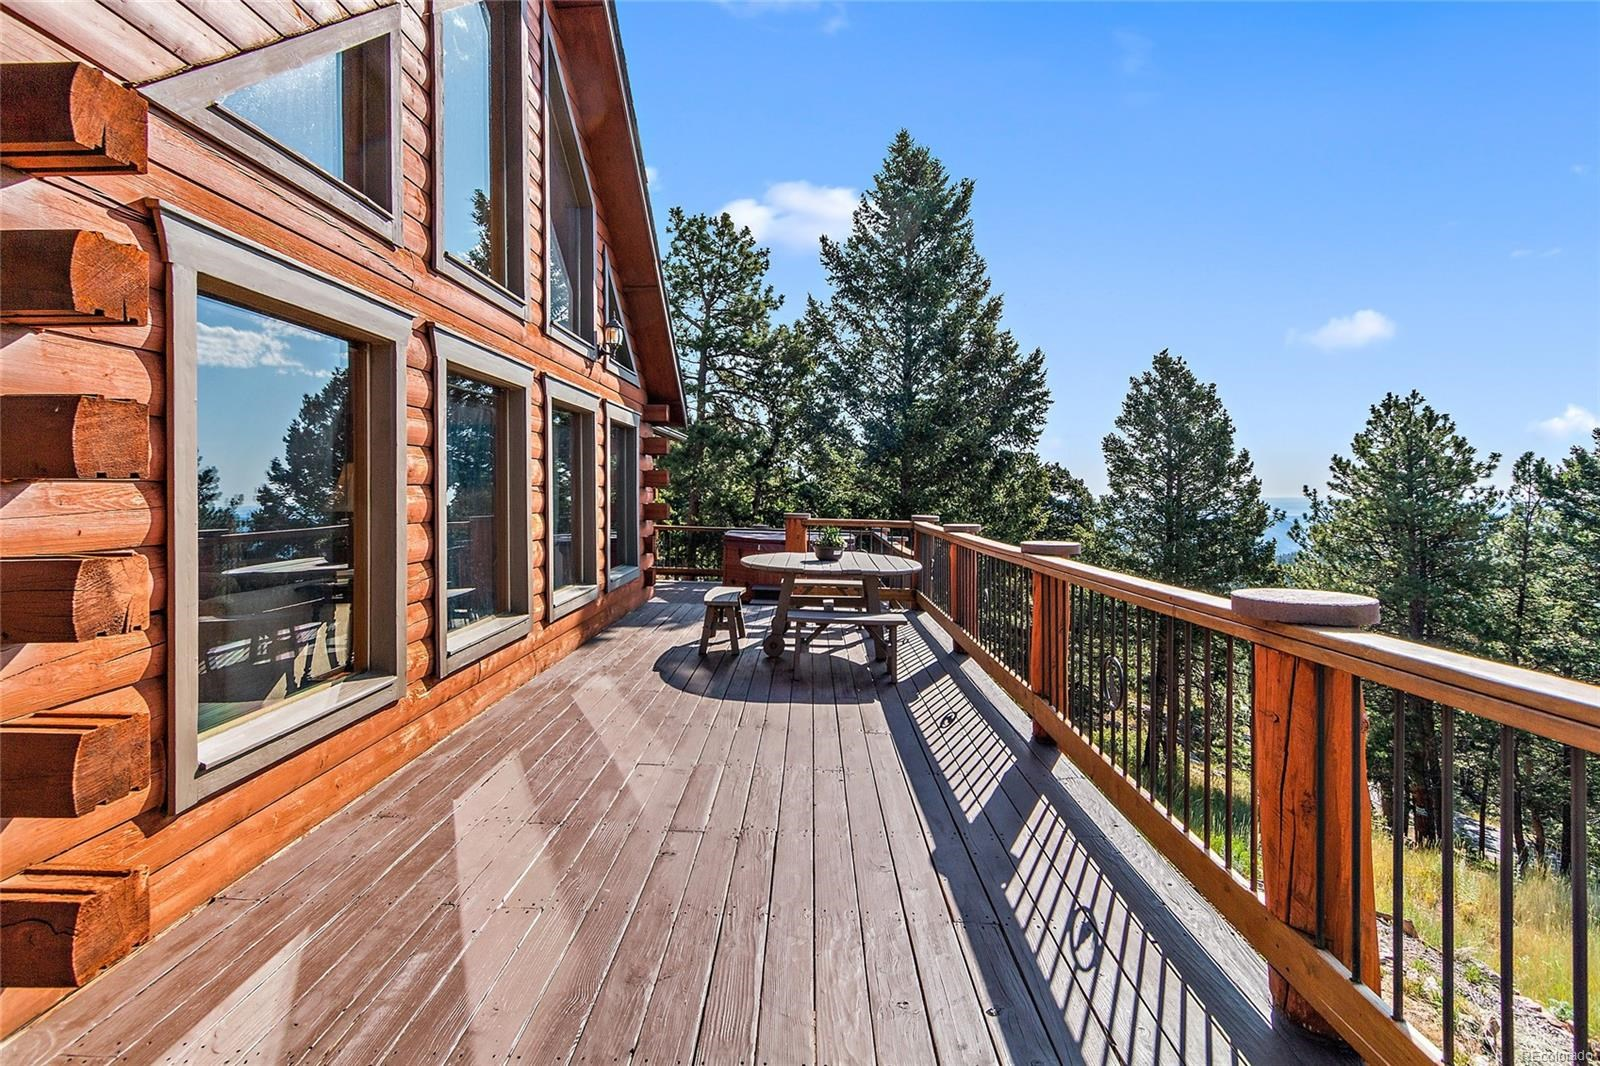 MLS# 1581293 - 32 - 13472 Riley Peak Road, Conifer, CO 80433